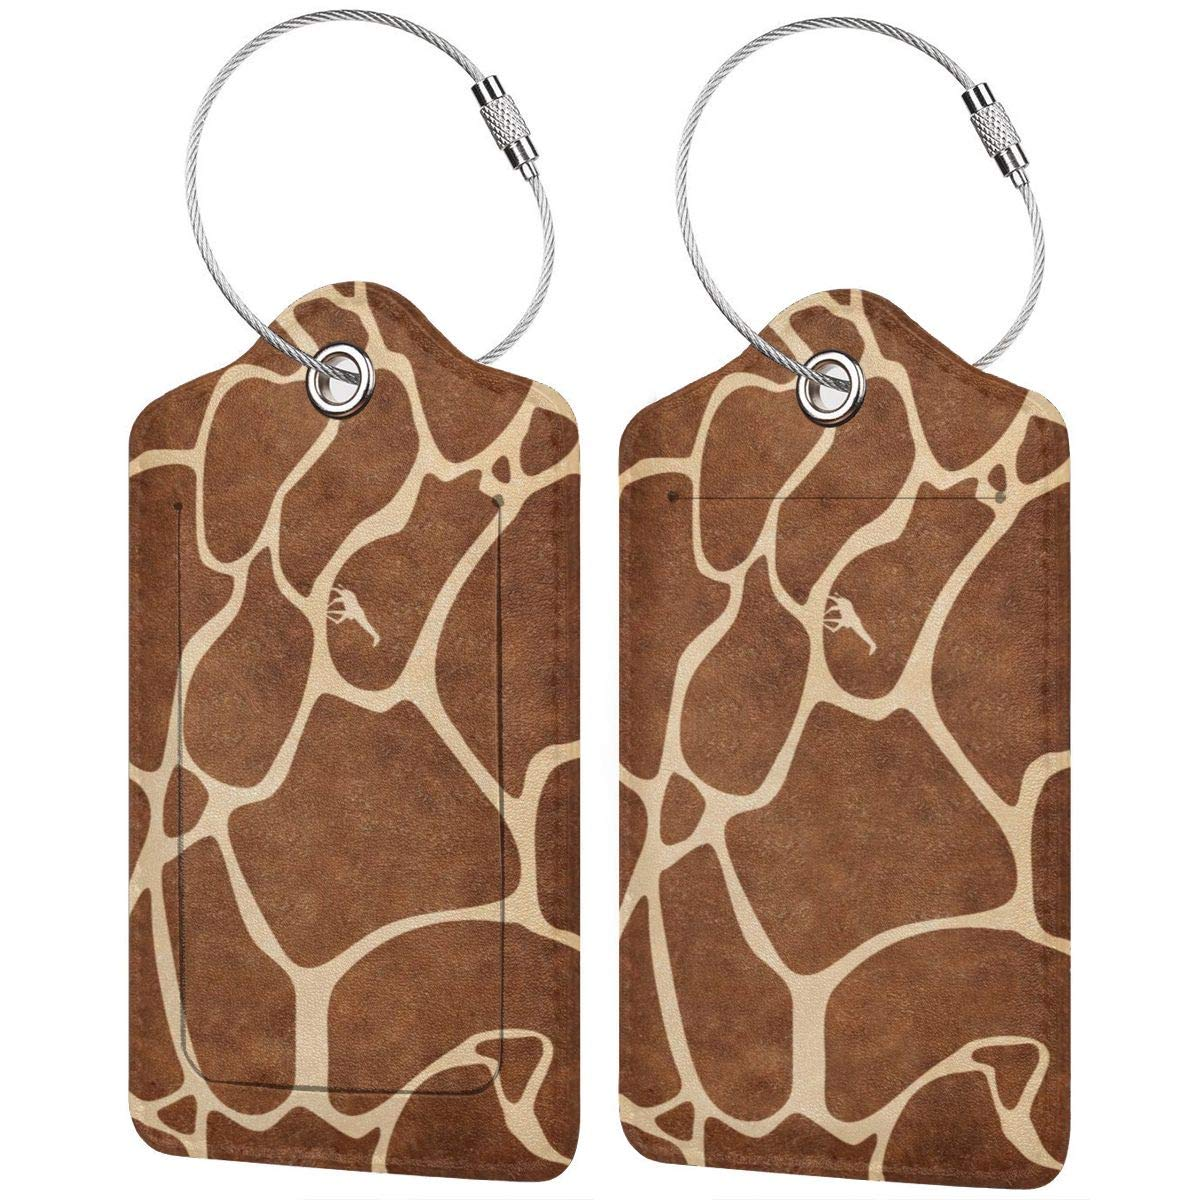 Giraffe Pattern Travel Luggage Tags With Full Privacy Cover Leather Case And Stainless Steel Loop